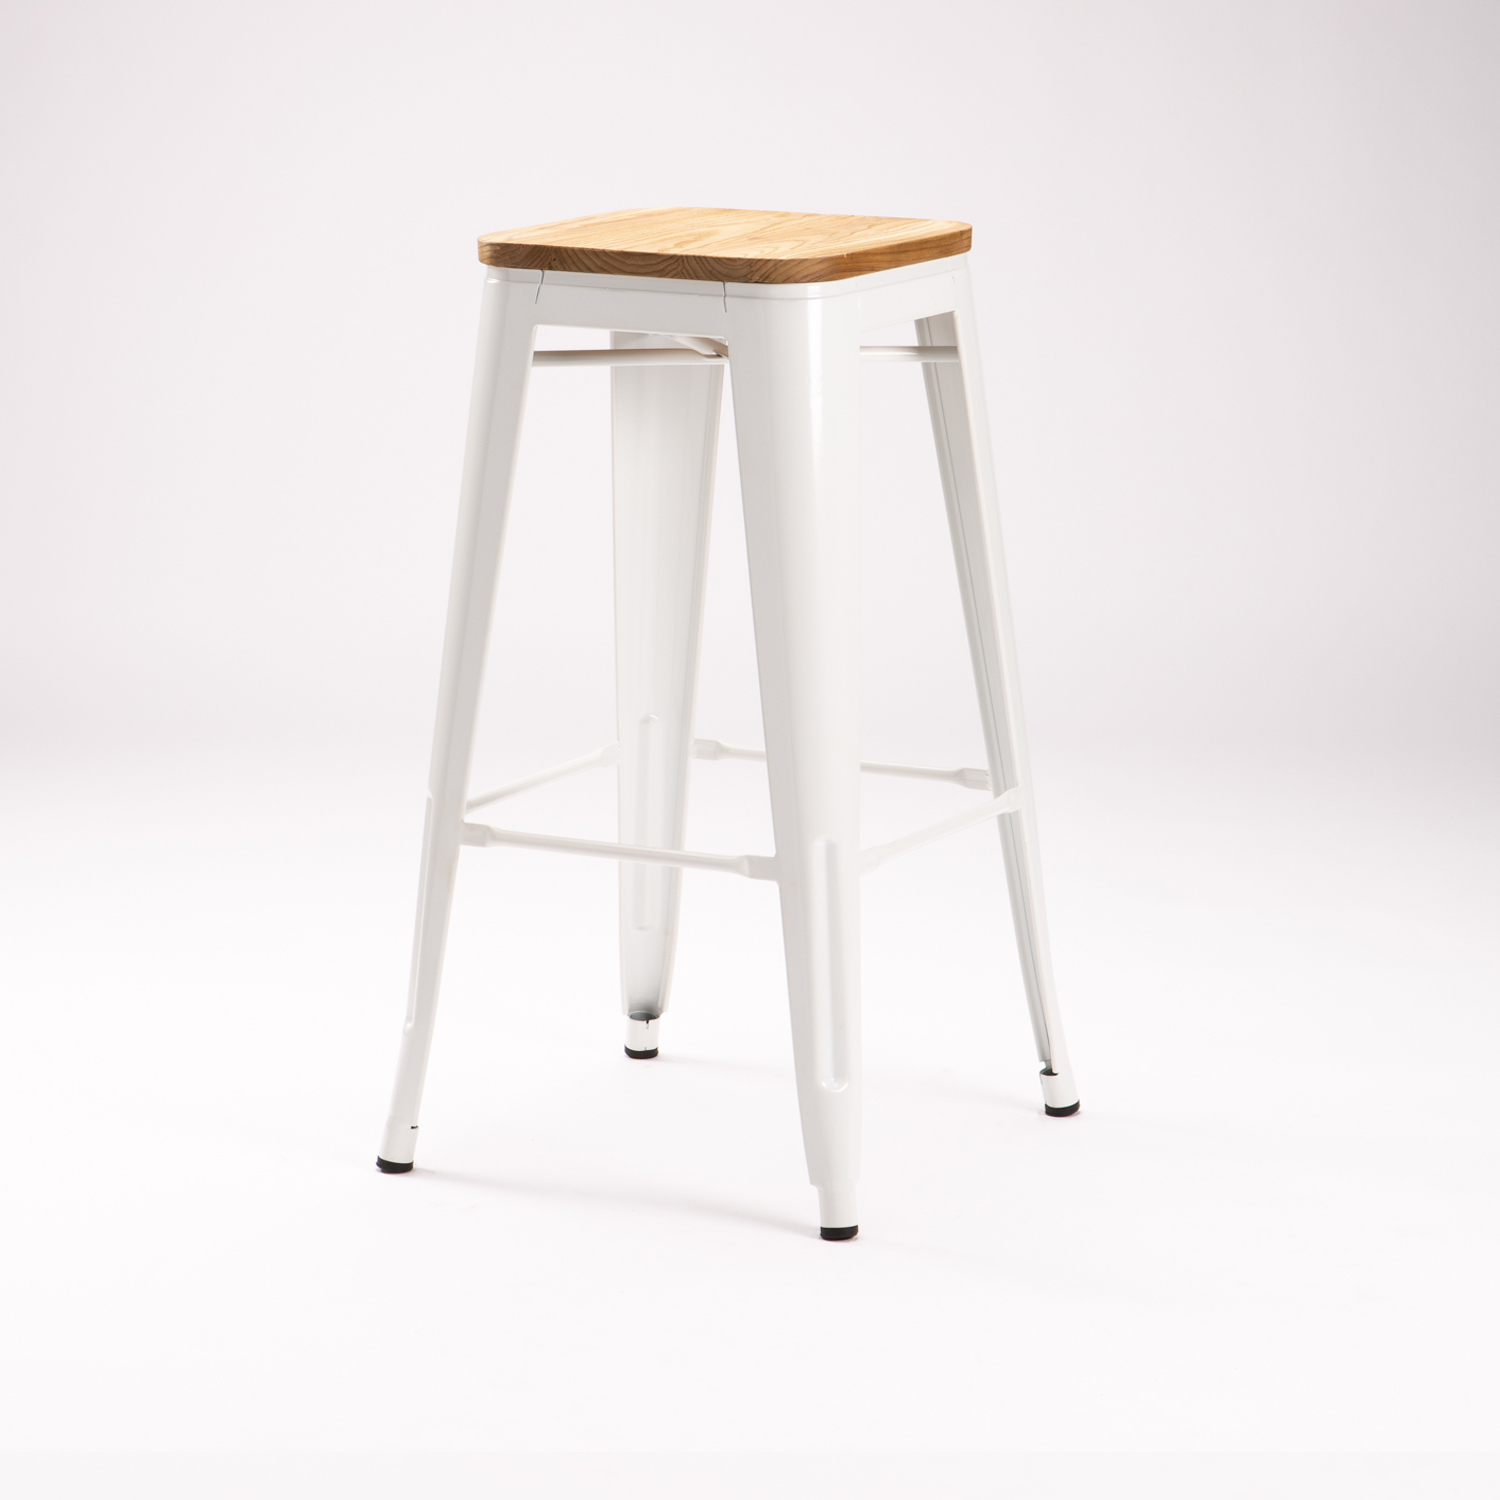 TOLIX KITCHEN STOOL WITH WOOD